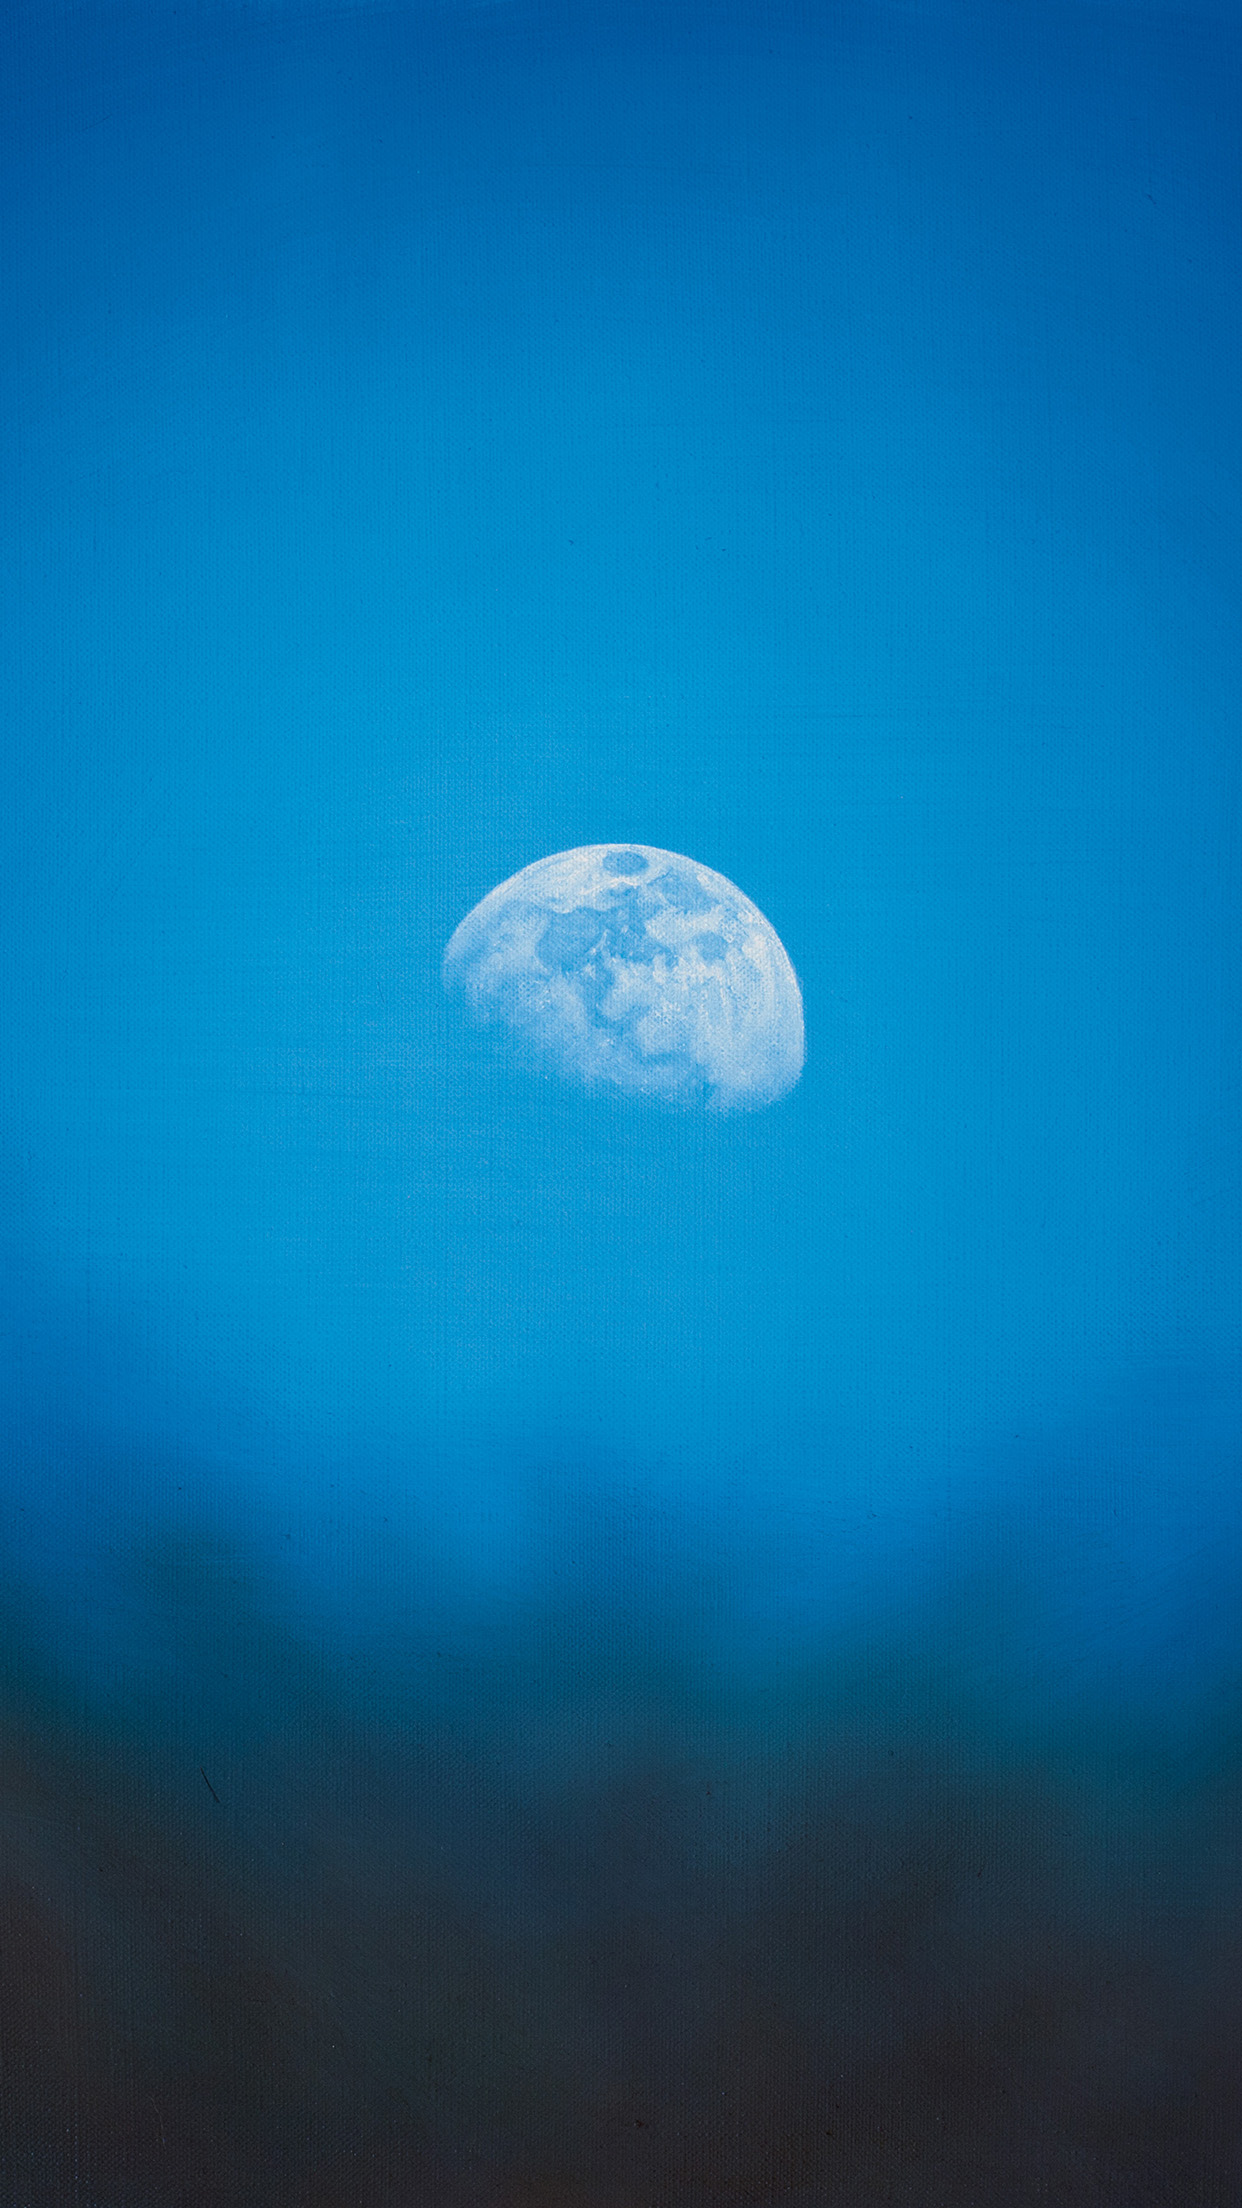 moon rise day nature blue dark night android wallpaper android hd wallpapers